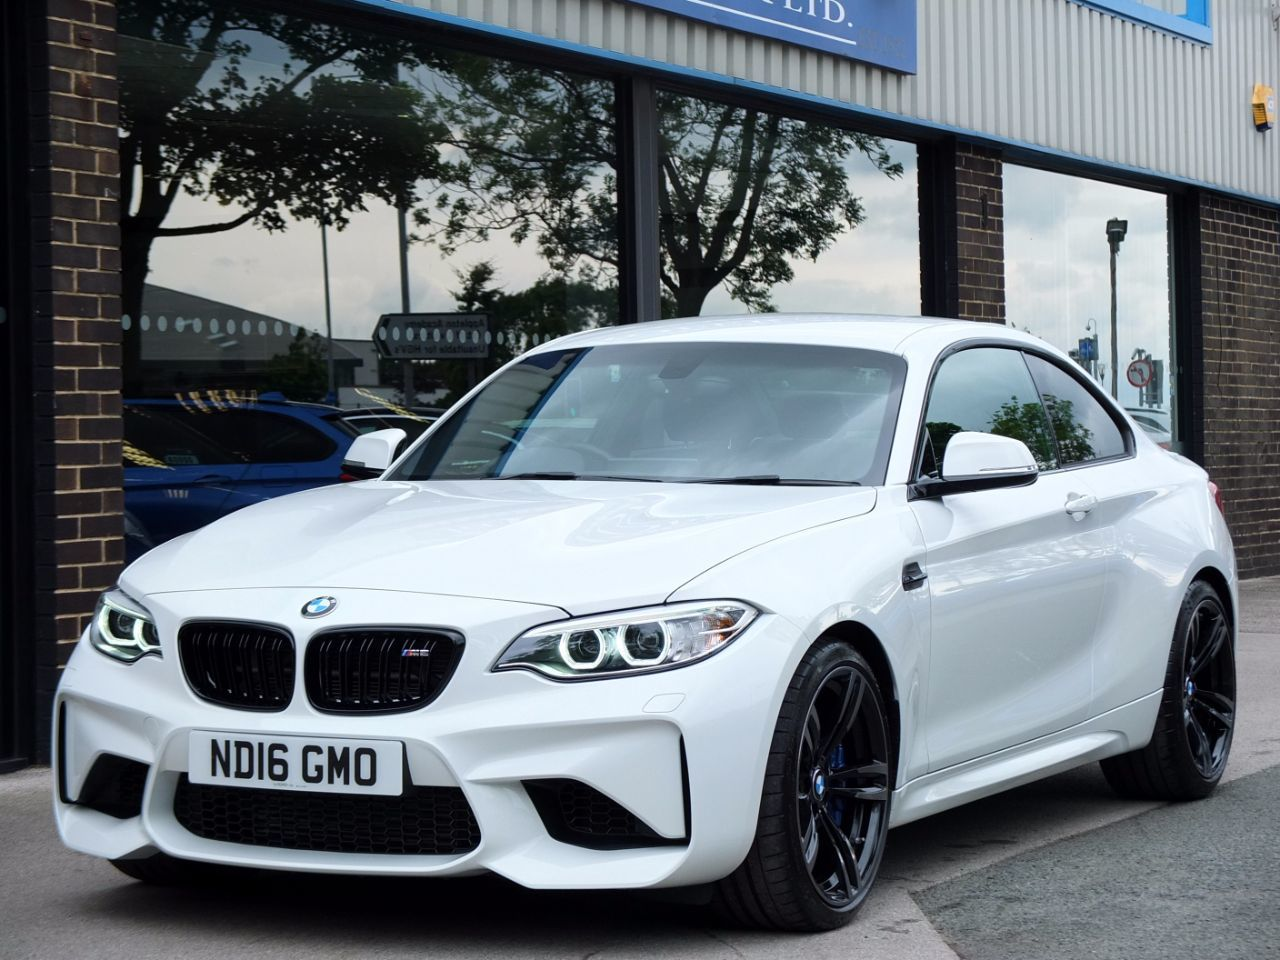 BMW M2 3.0 DCT Coupe Petrol Alpine WhiteBMW M2 3.0 DCT Coupe Petrol Alpine White at fa Roper Ltd Bradford